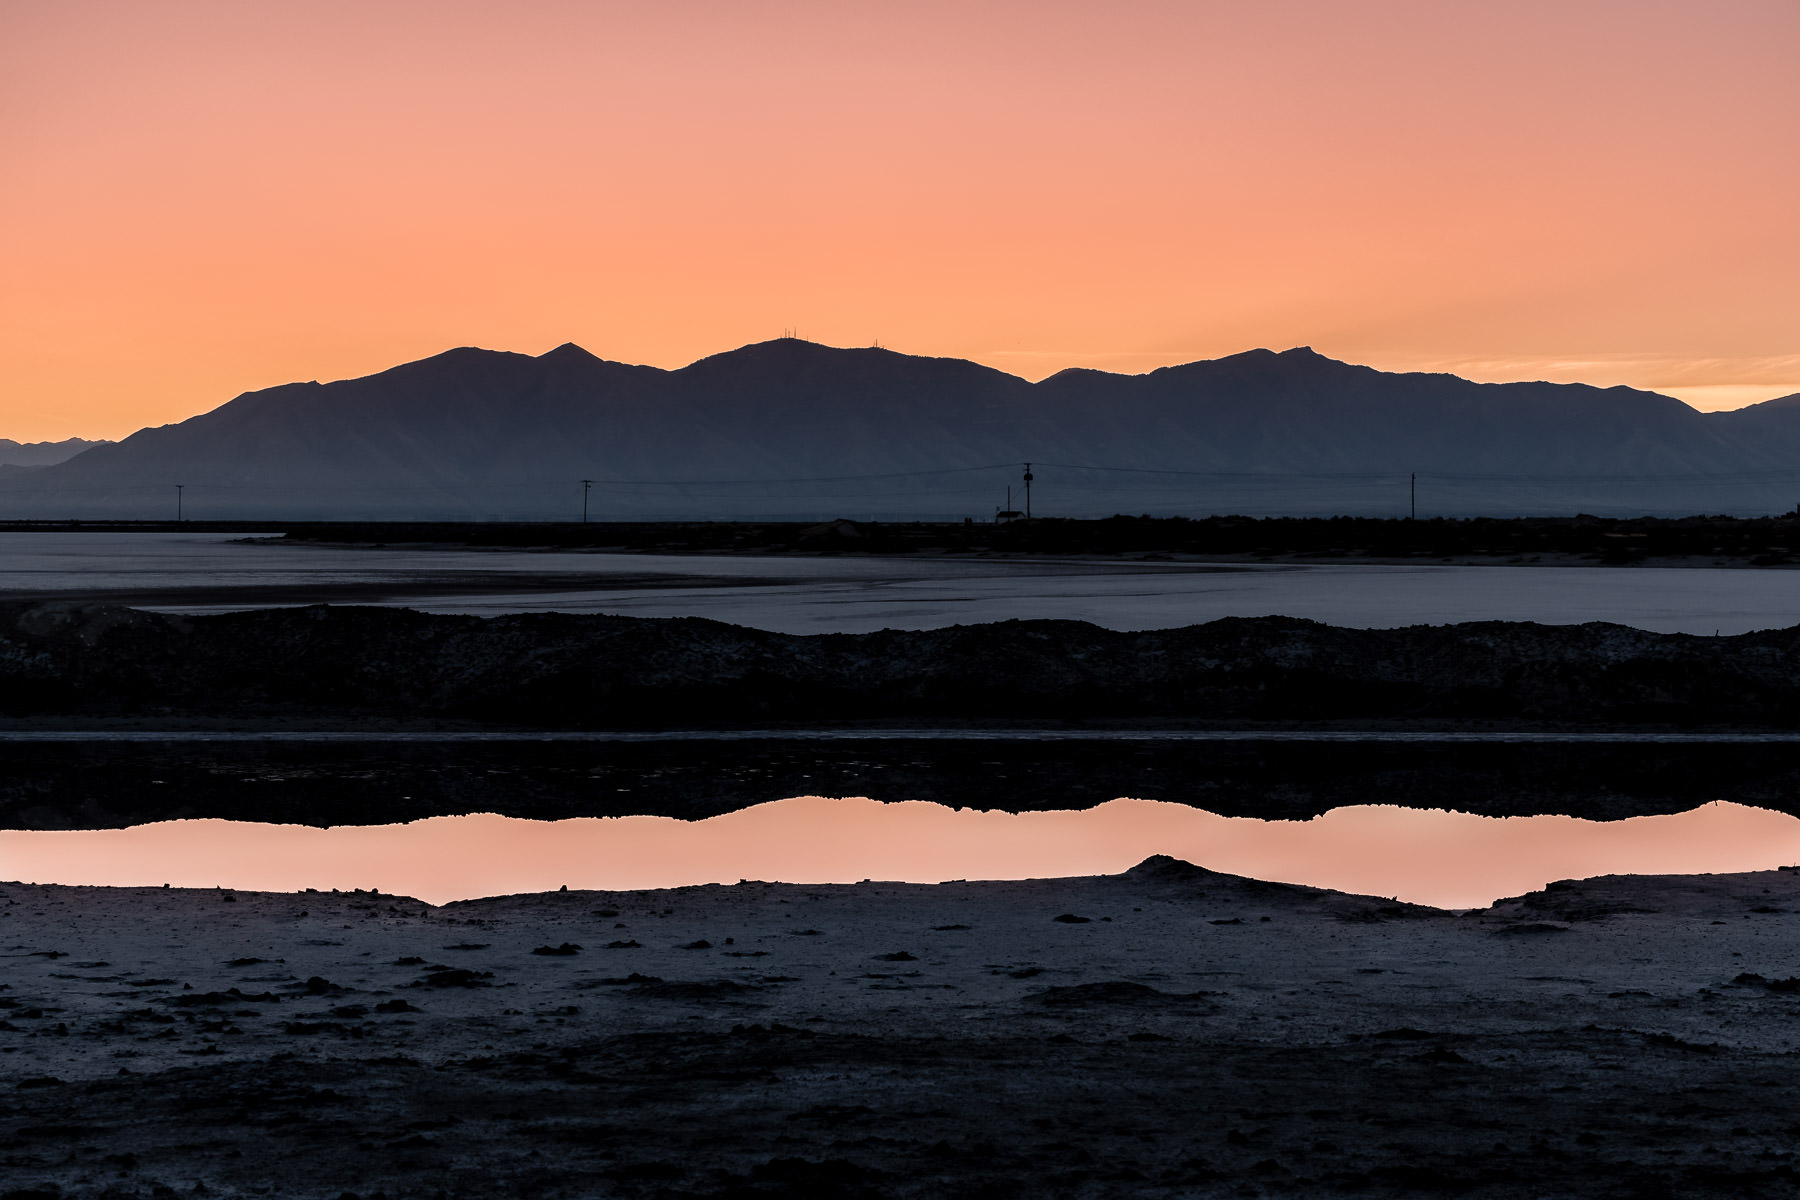 The first light of the morning sun reflects in the still waters of a roadside wash near the Great Salt Lake's Stansbury Island, Utah.